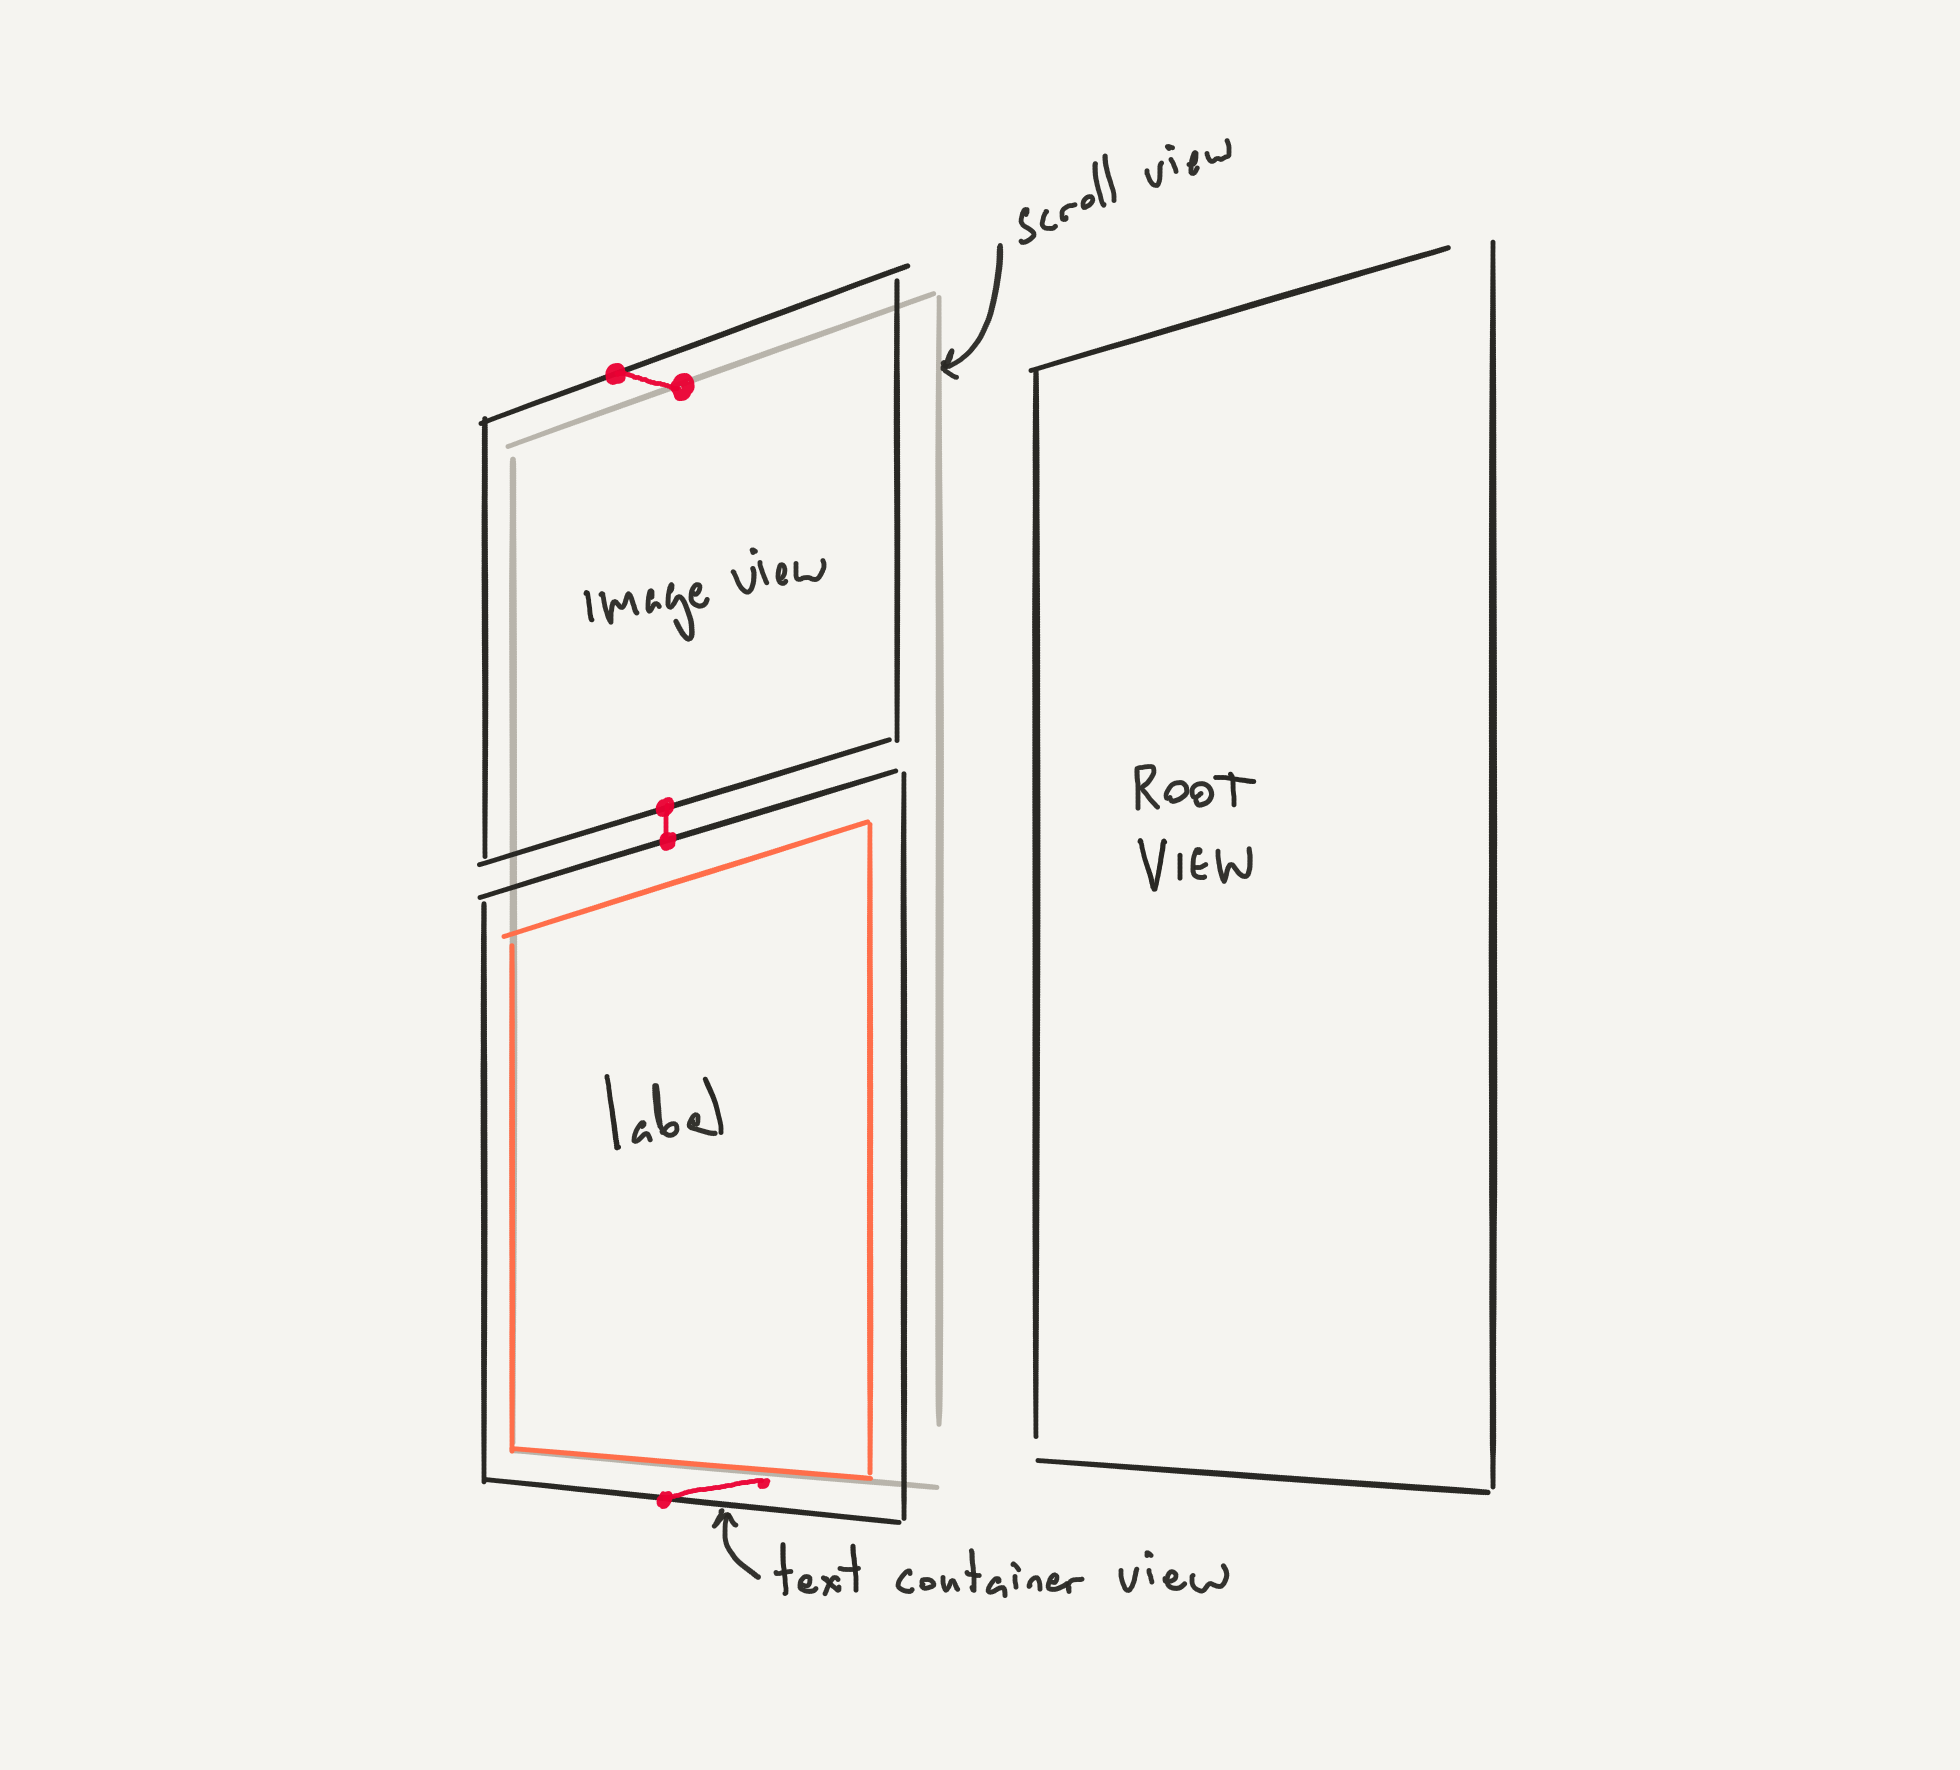 Tutorial: Creating Stretchy Layouts on iOS Using Auto Layout